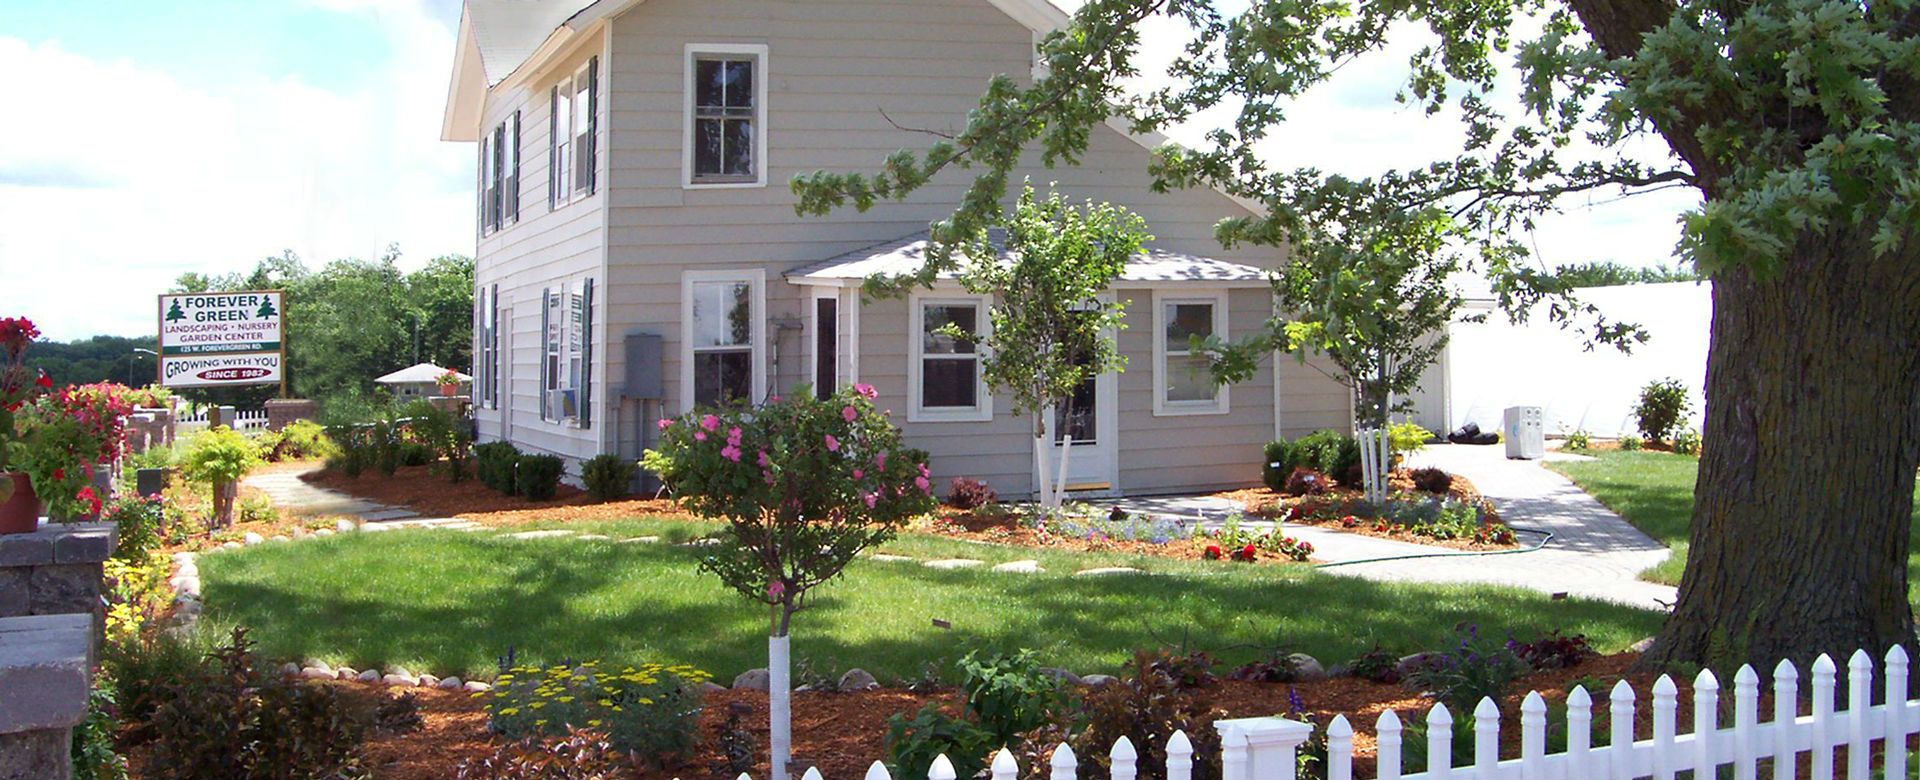 Forever Green Coralville Iowa Who We Are header landscaping house